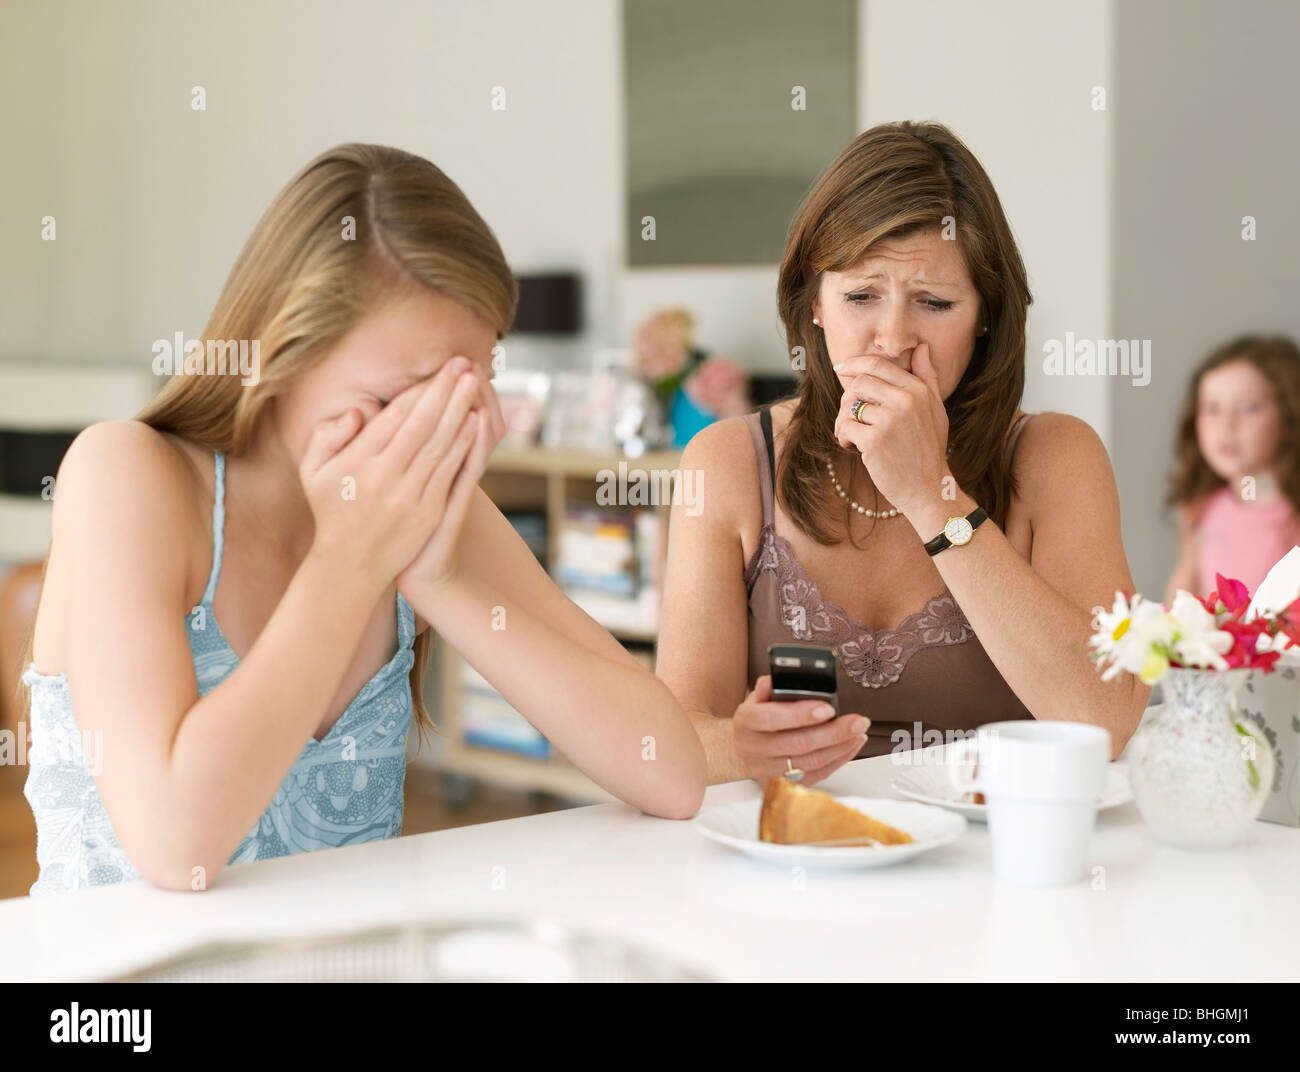 mother sees cyber bullying on cellphone - Stock Image